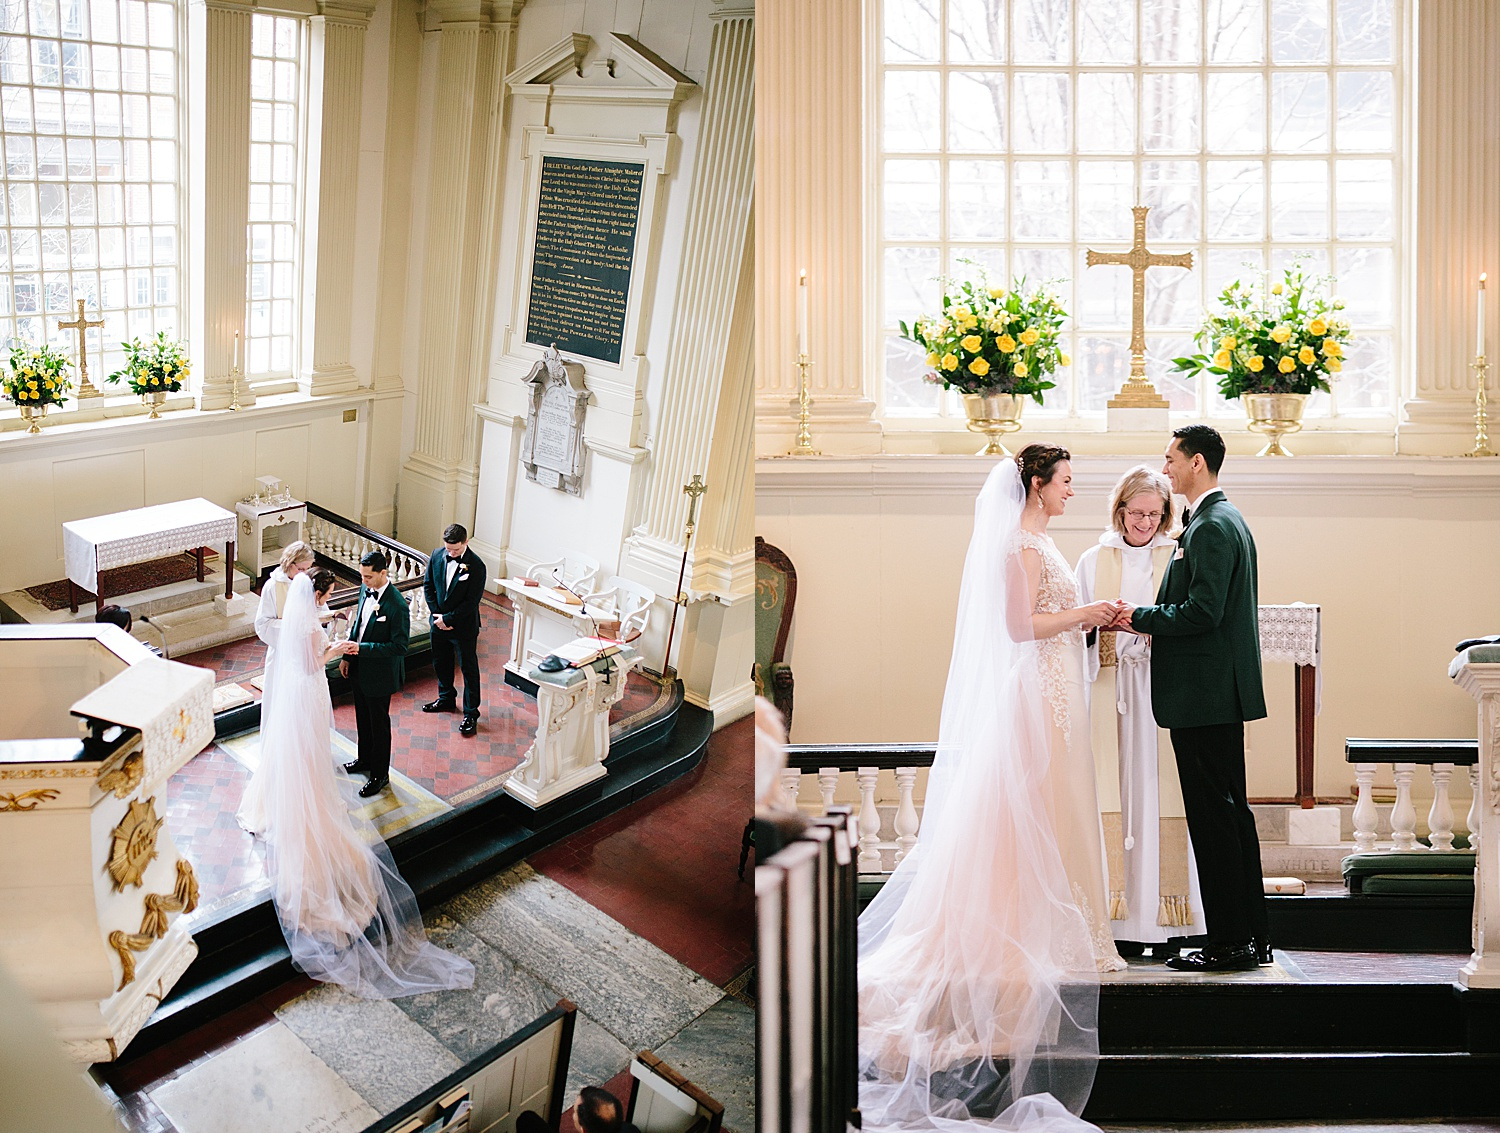 kirstentony_uniontrust_finleycatering_christchurch_philadelphia_wedding_image_0712.jpg